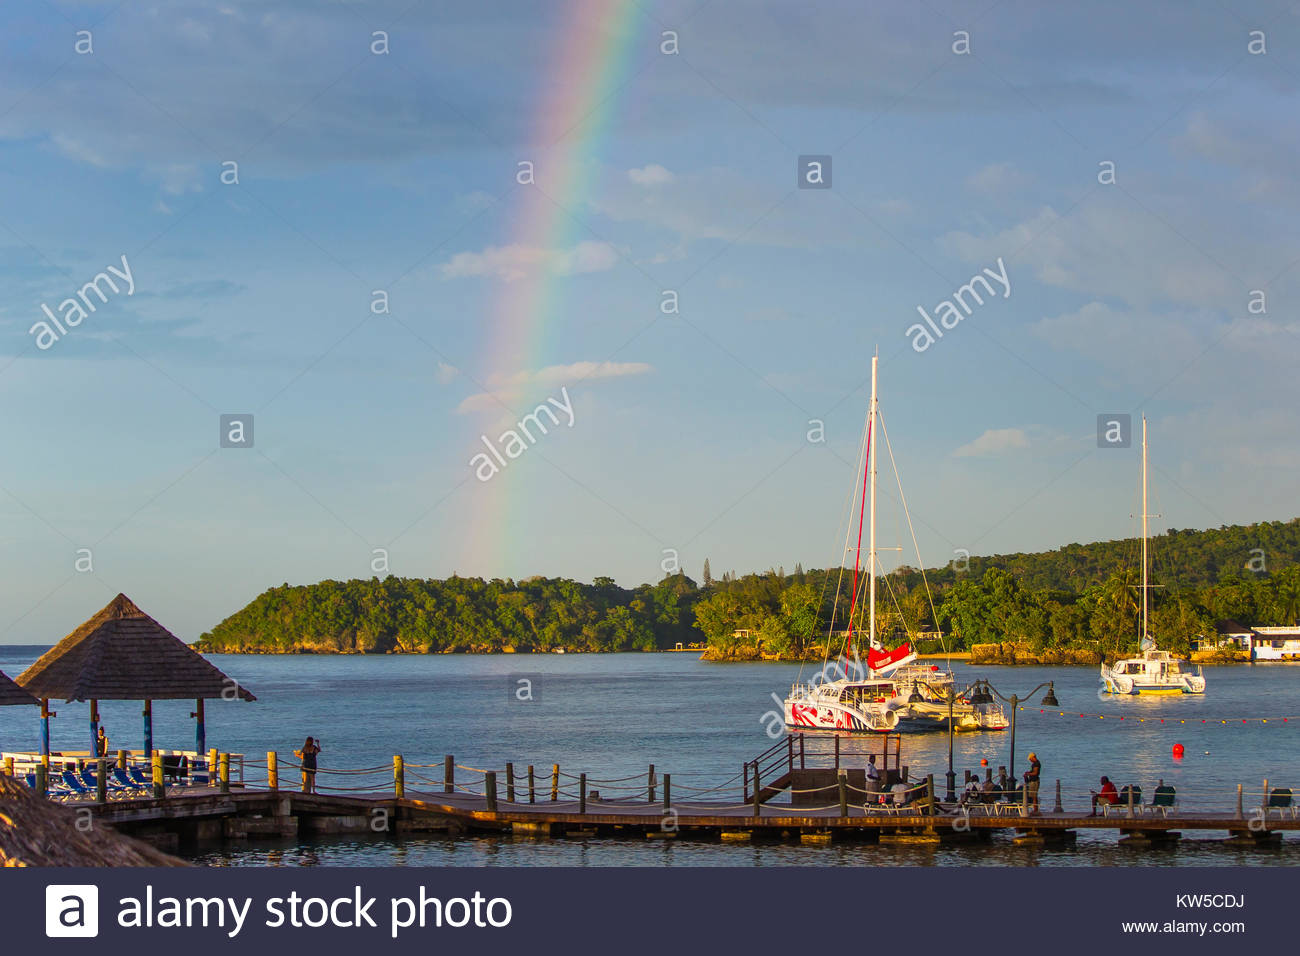 A rainbow over the water and shore in Ocho Rios, Jamaica. - Stock Image